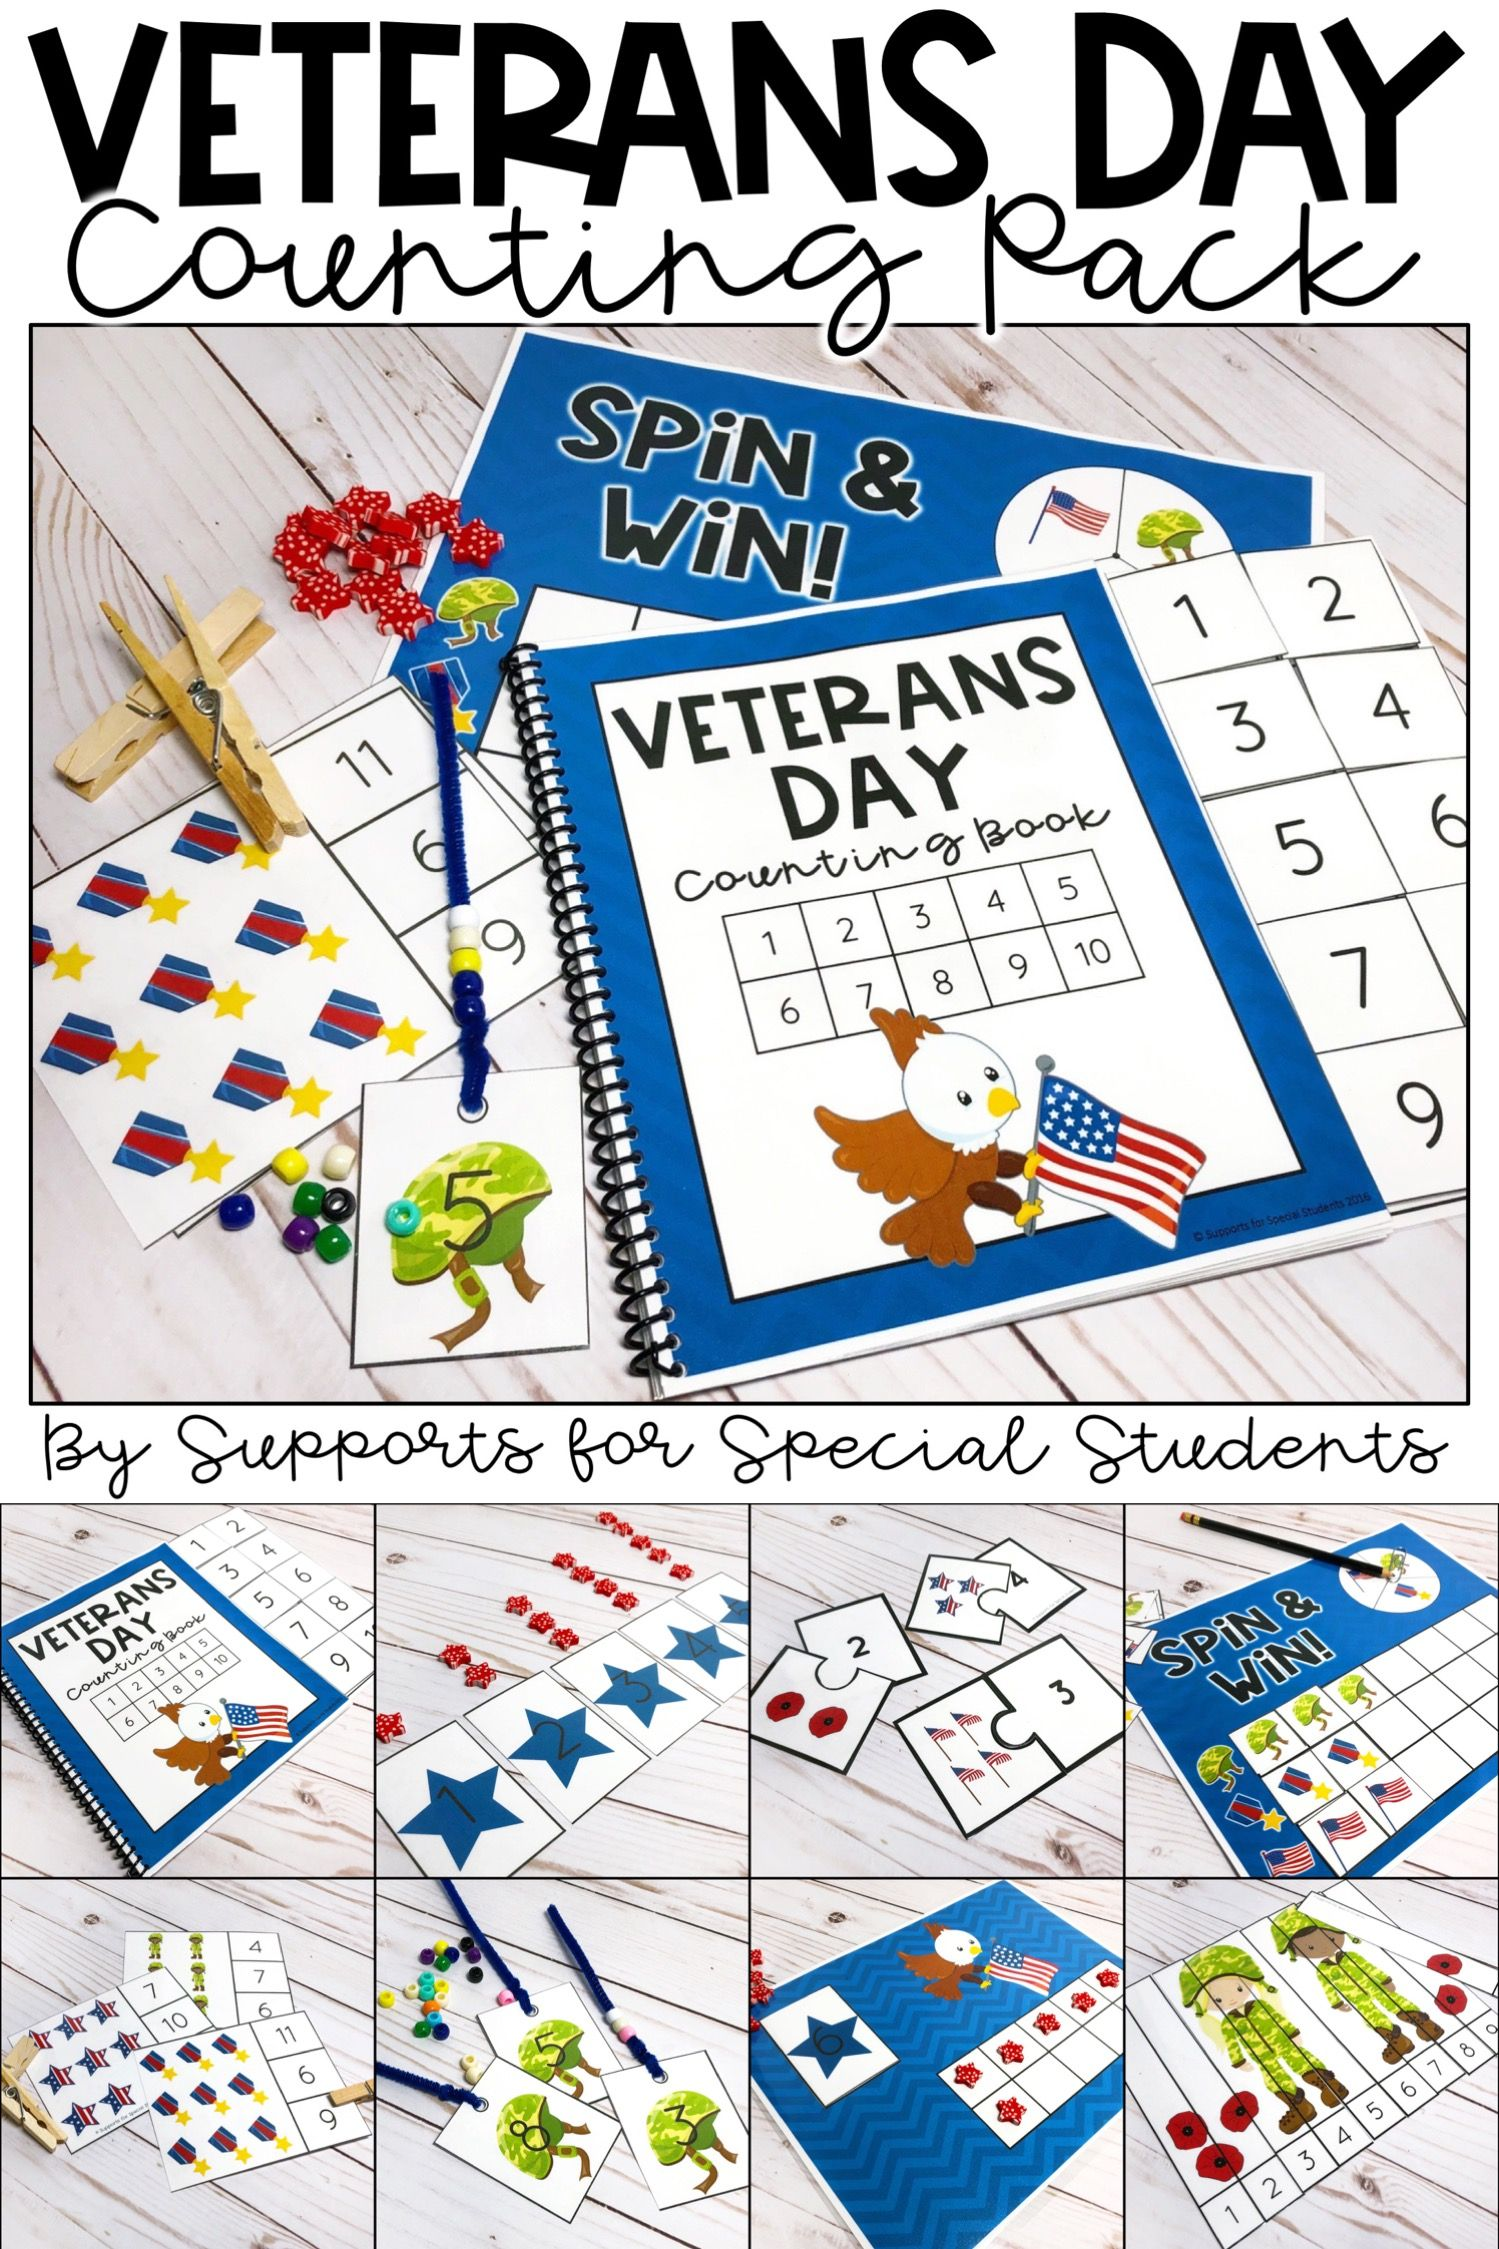 Veterans Day Counting Pack